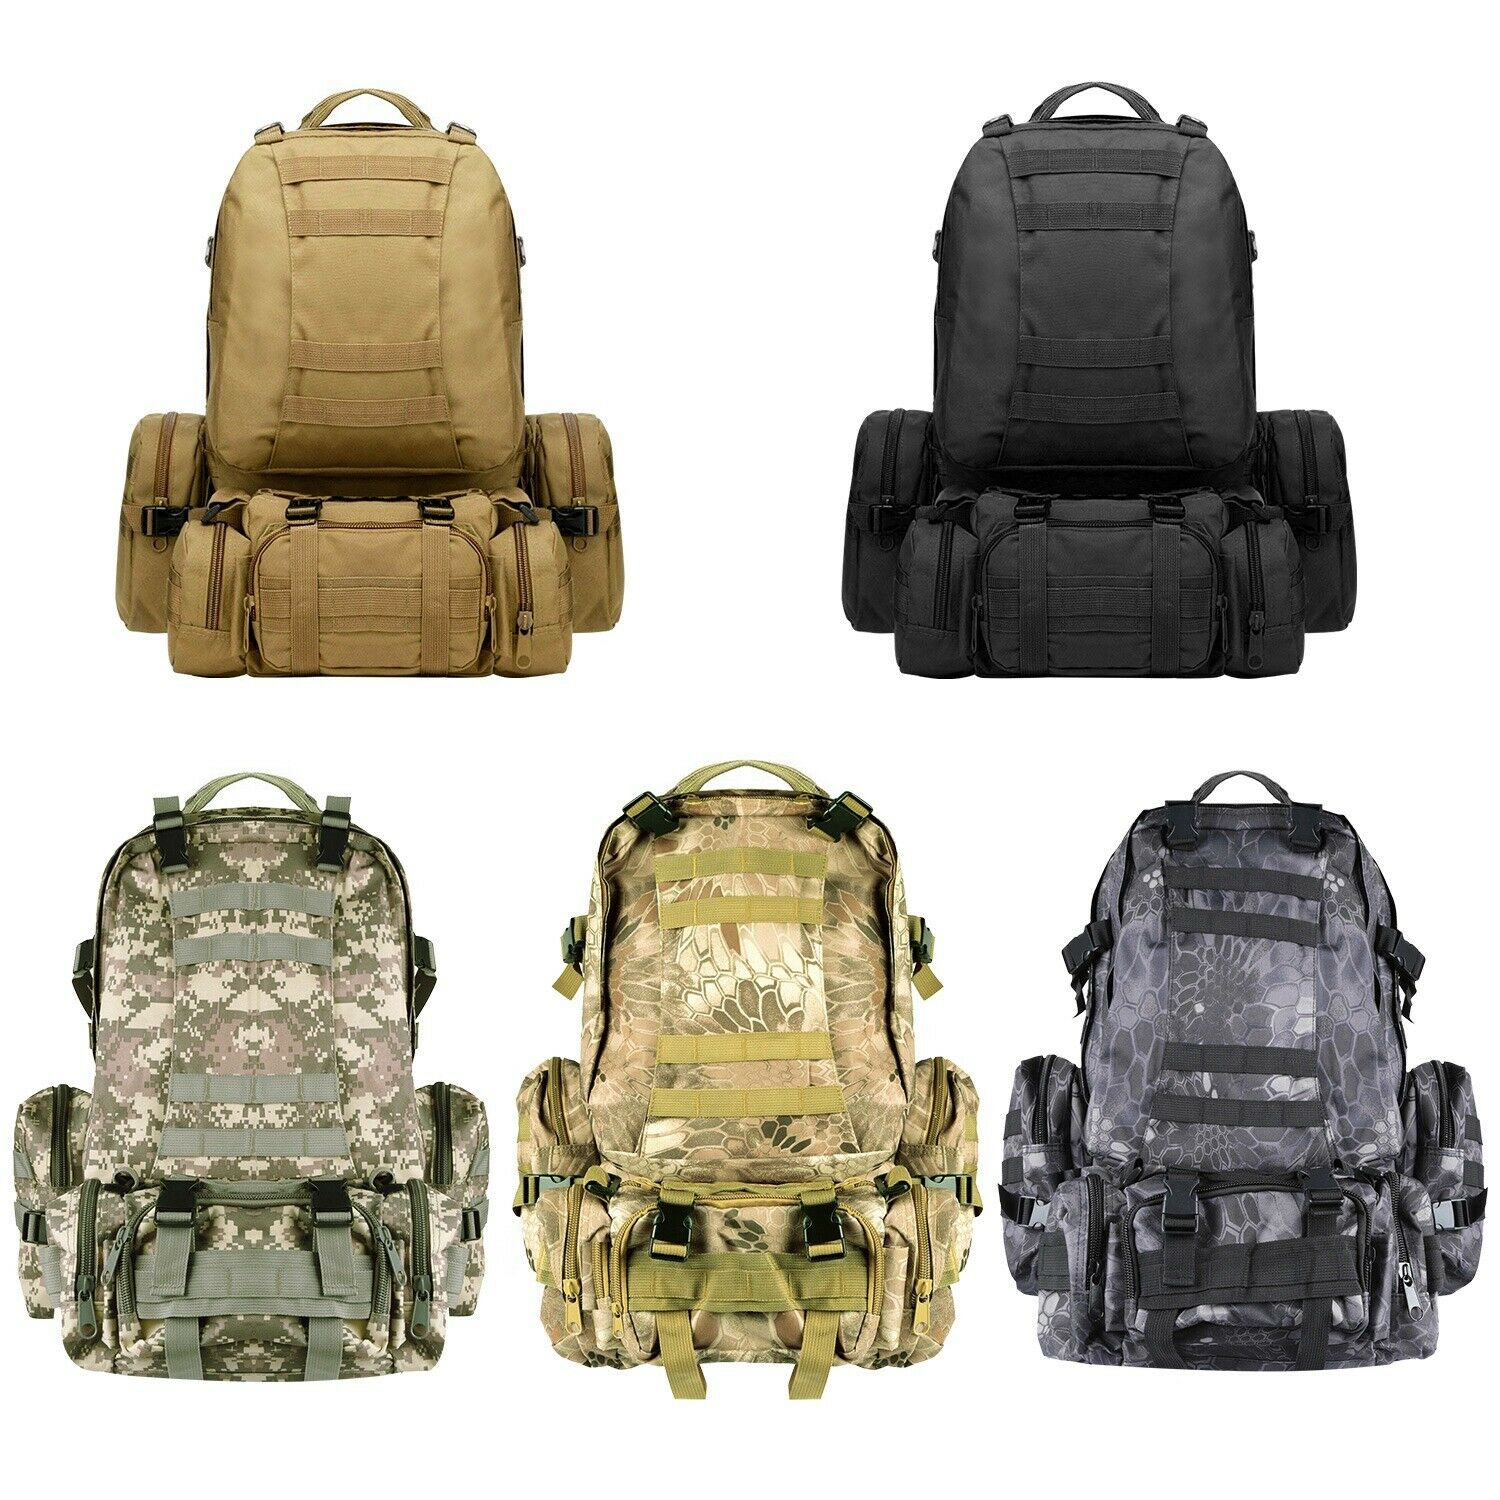 56L 4in1 Molle exterior Military Tactical Bag Camping Hiking Trekking B... - s l1600